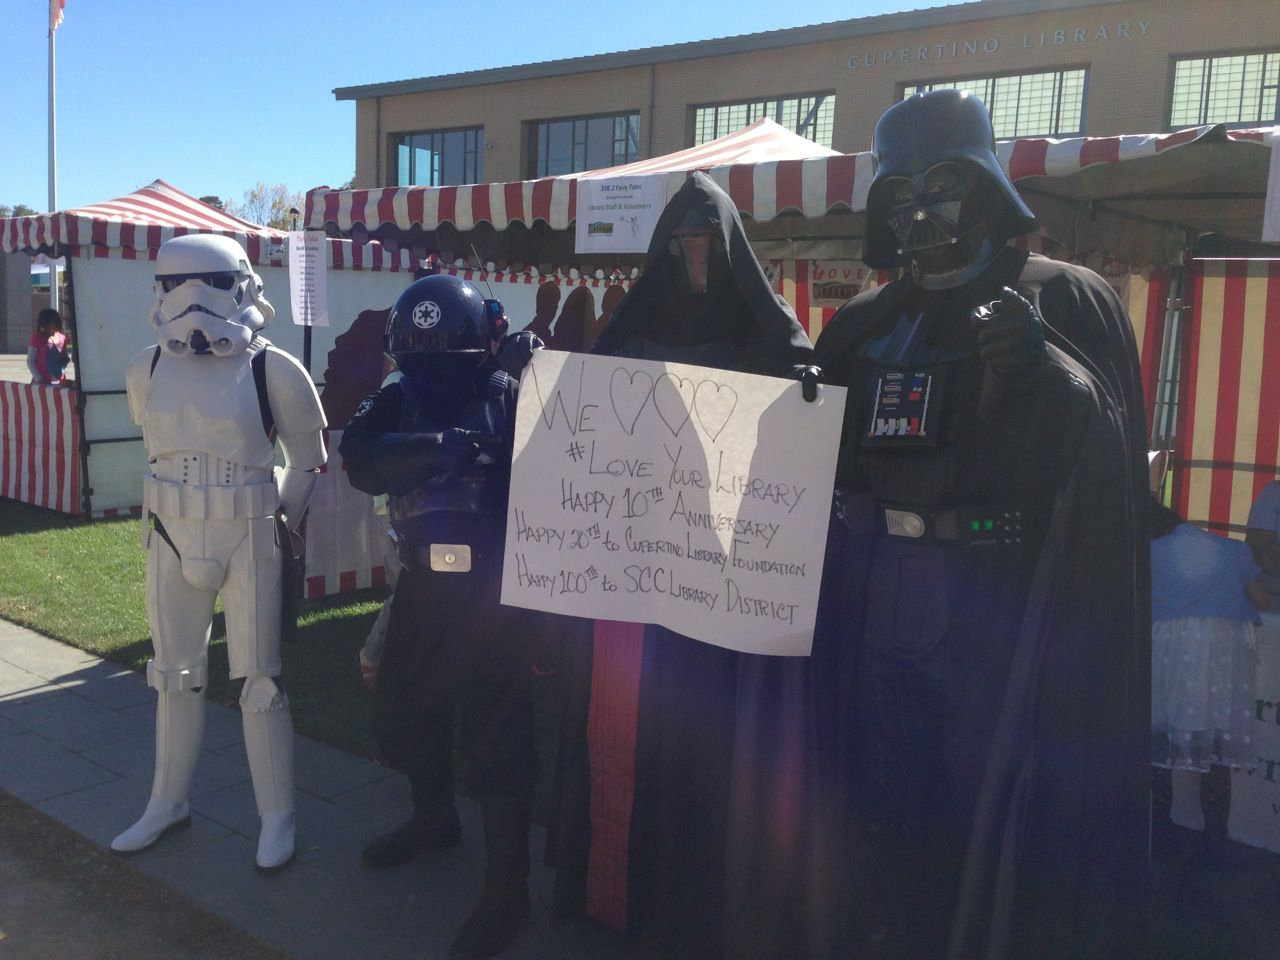 Even the Star Wars bad guys love the library! Bad guy